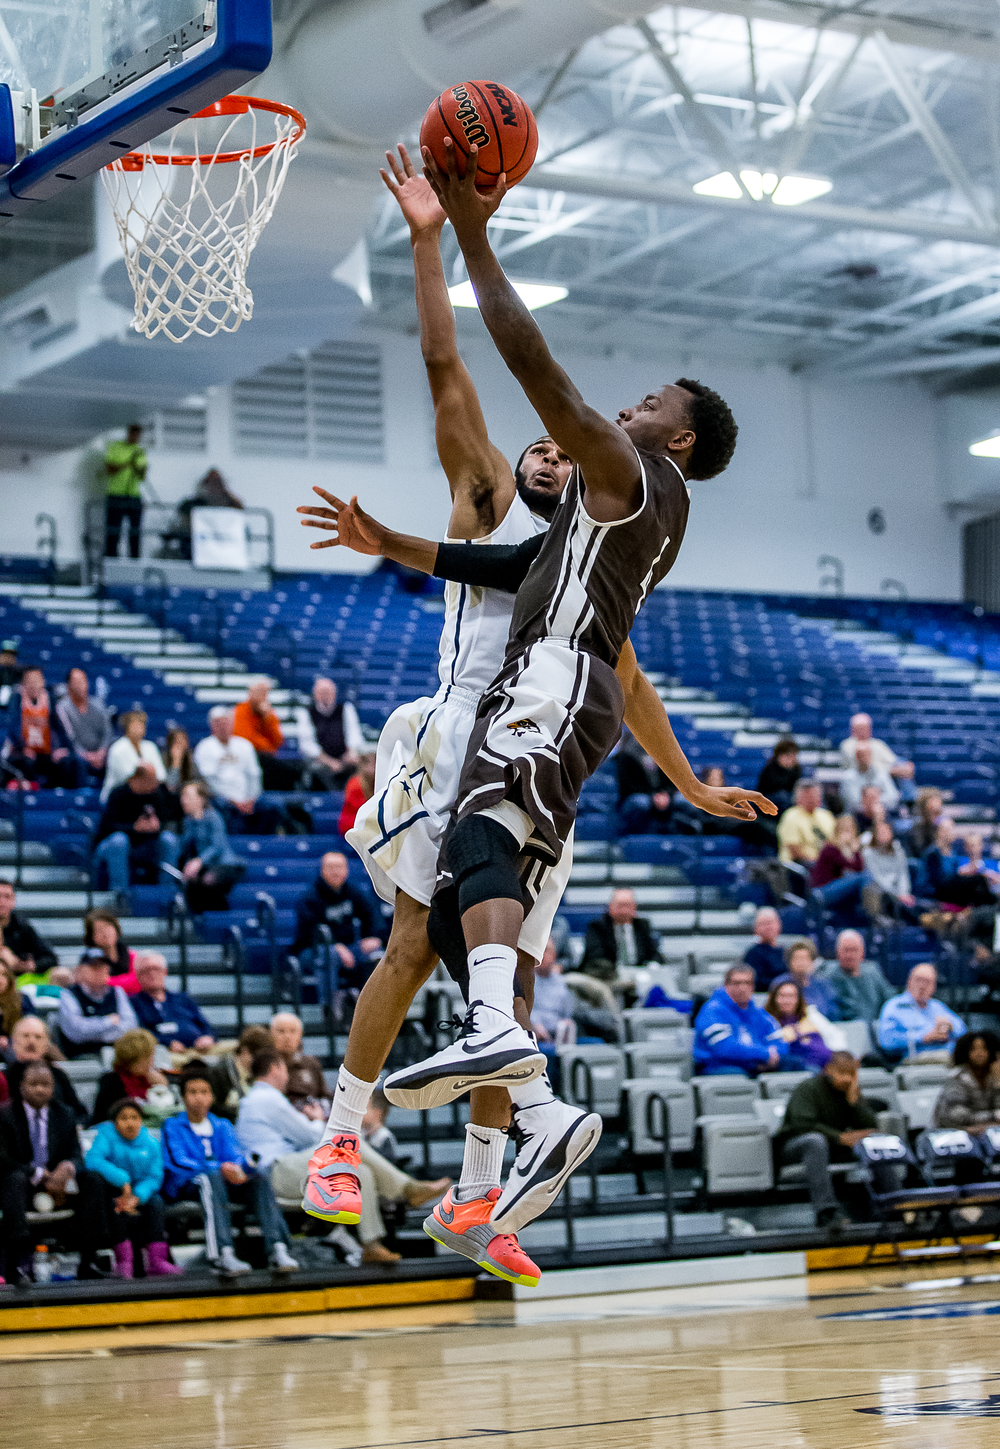 University of Illinois Springfield's Davi Austin (2) blocks a shot from Quincy University's Thomas Jackson (4) in the second half at the UIS Athletic & Recreation Center, Thursday, Jan. 8, 2015, in Springfield, Ill. Justin L. Fowler/The State Journal-Register